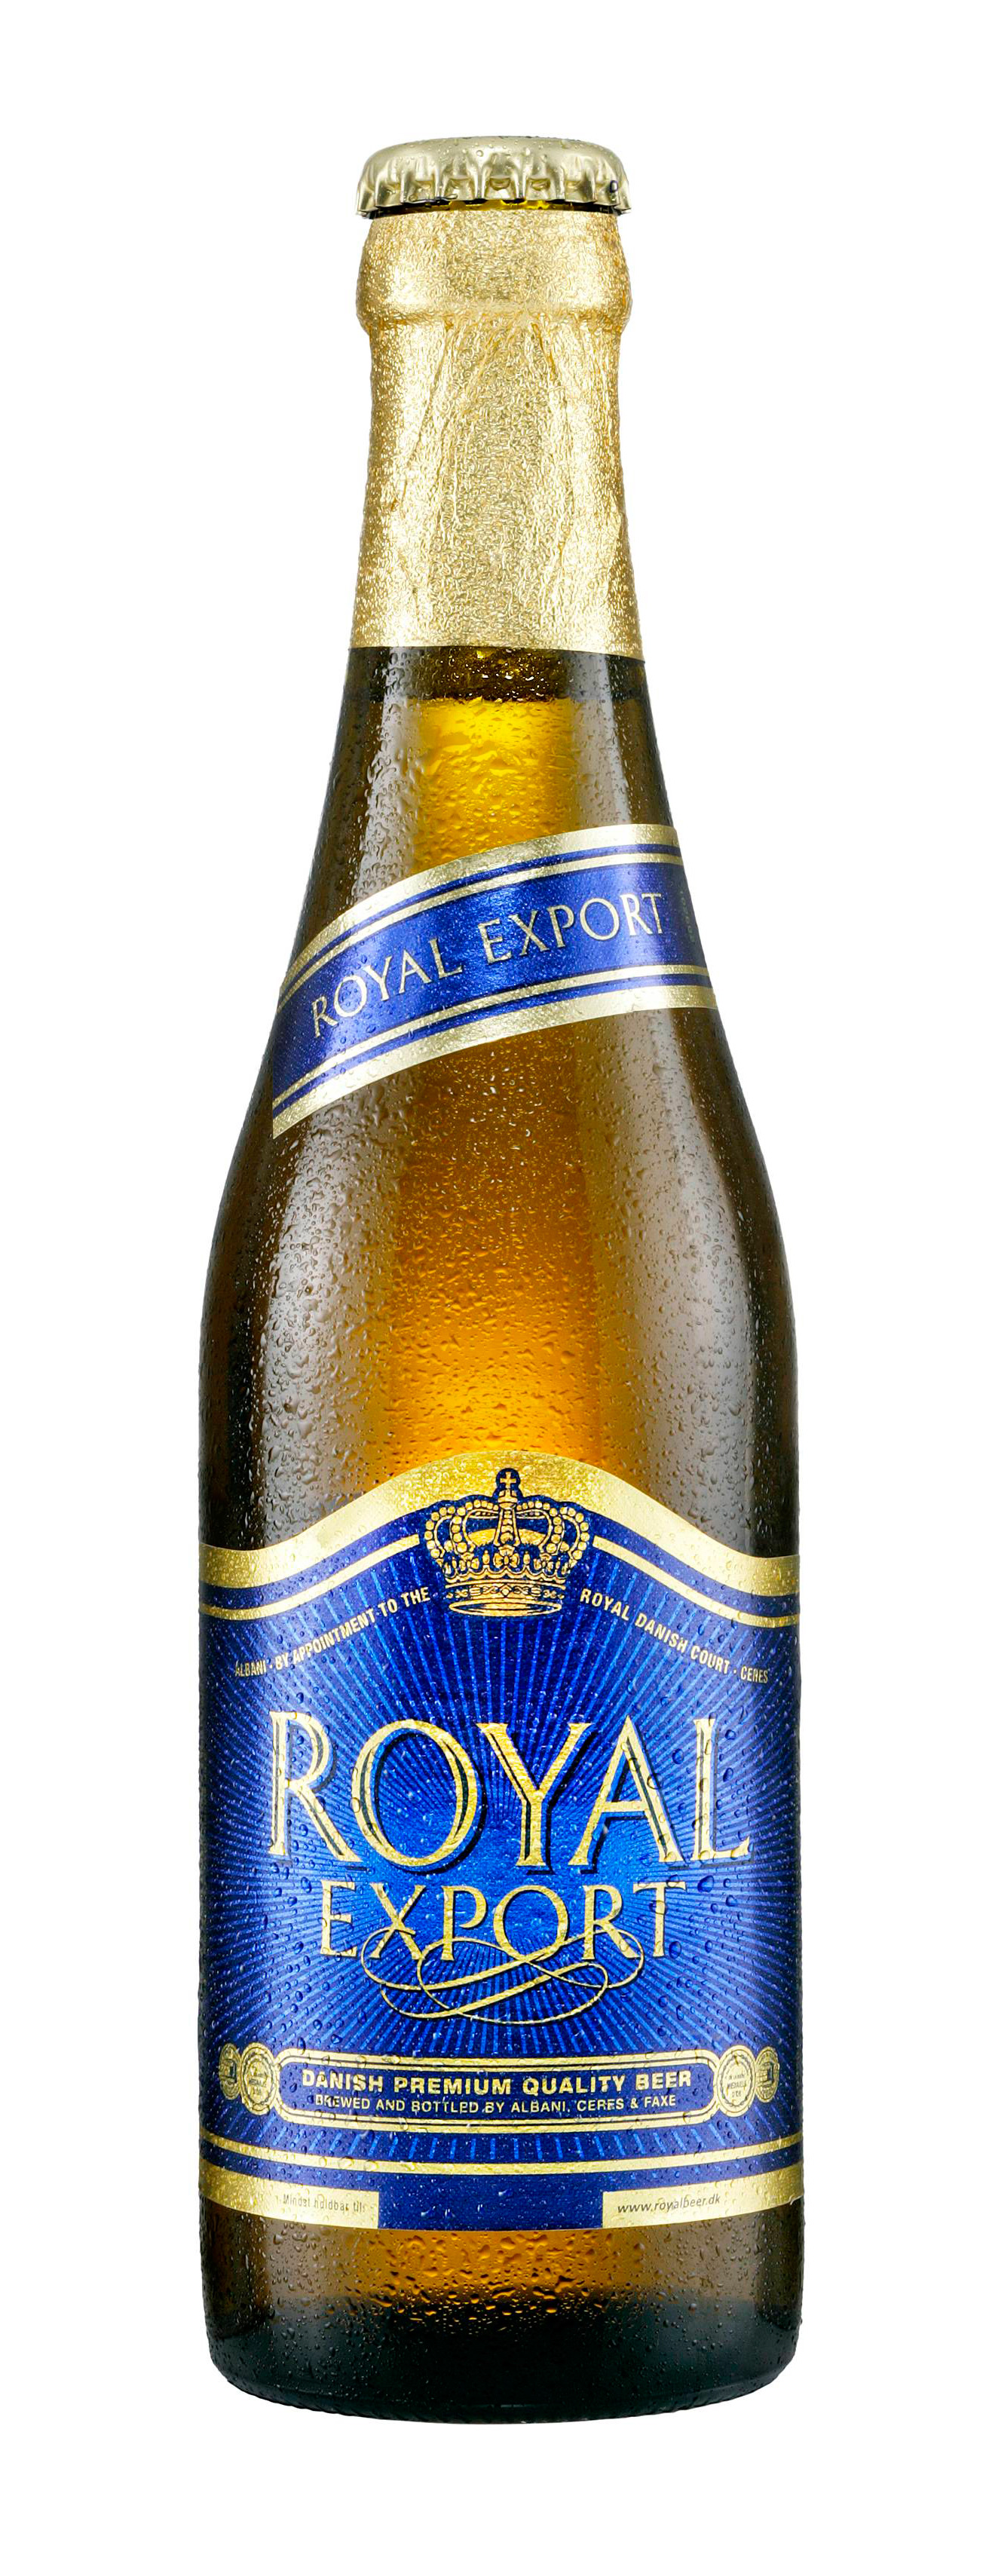 Kølig royal export pilsner